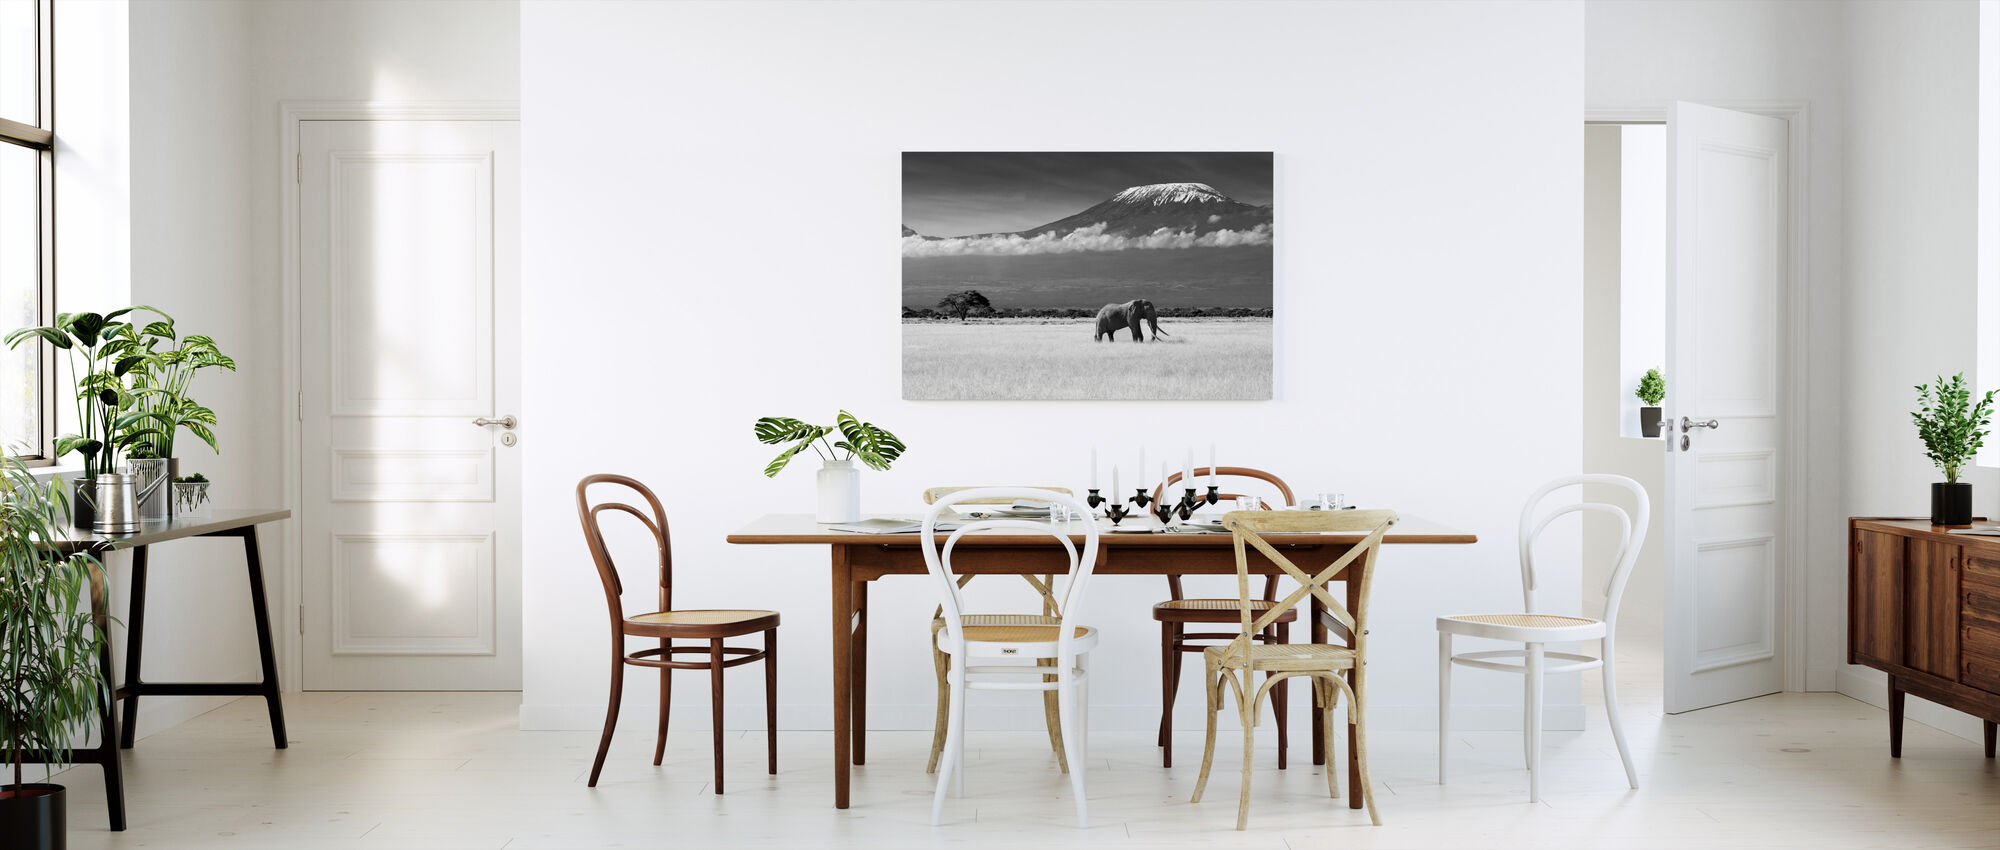 Elephant Landscape - Canvas print - Kitchen